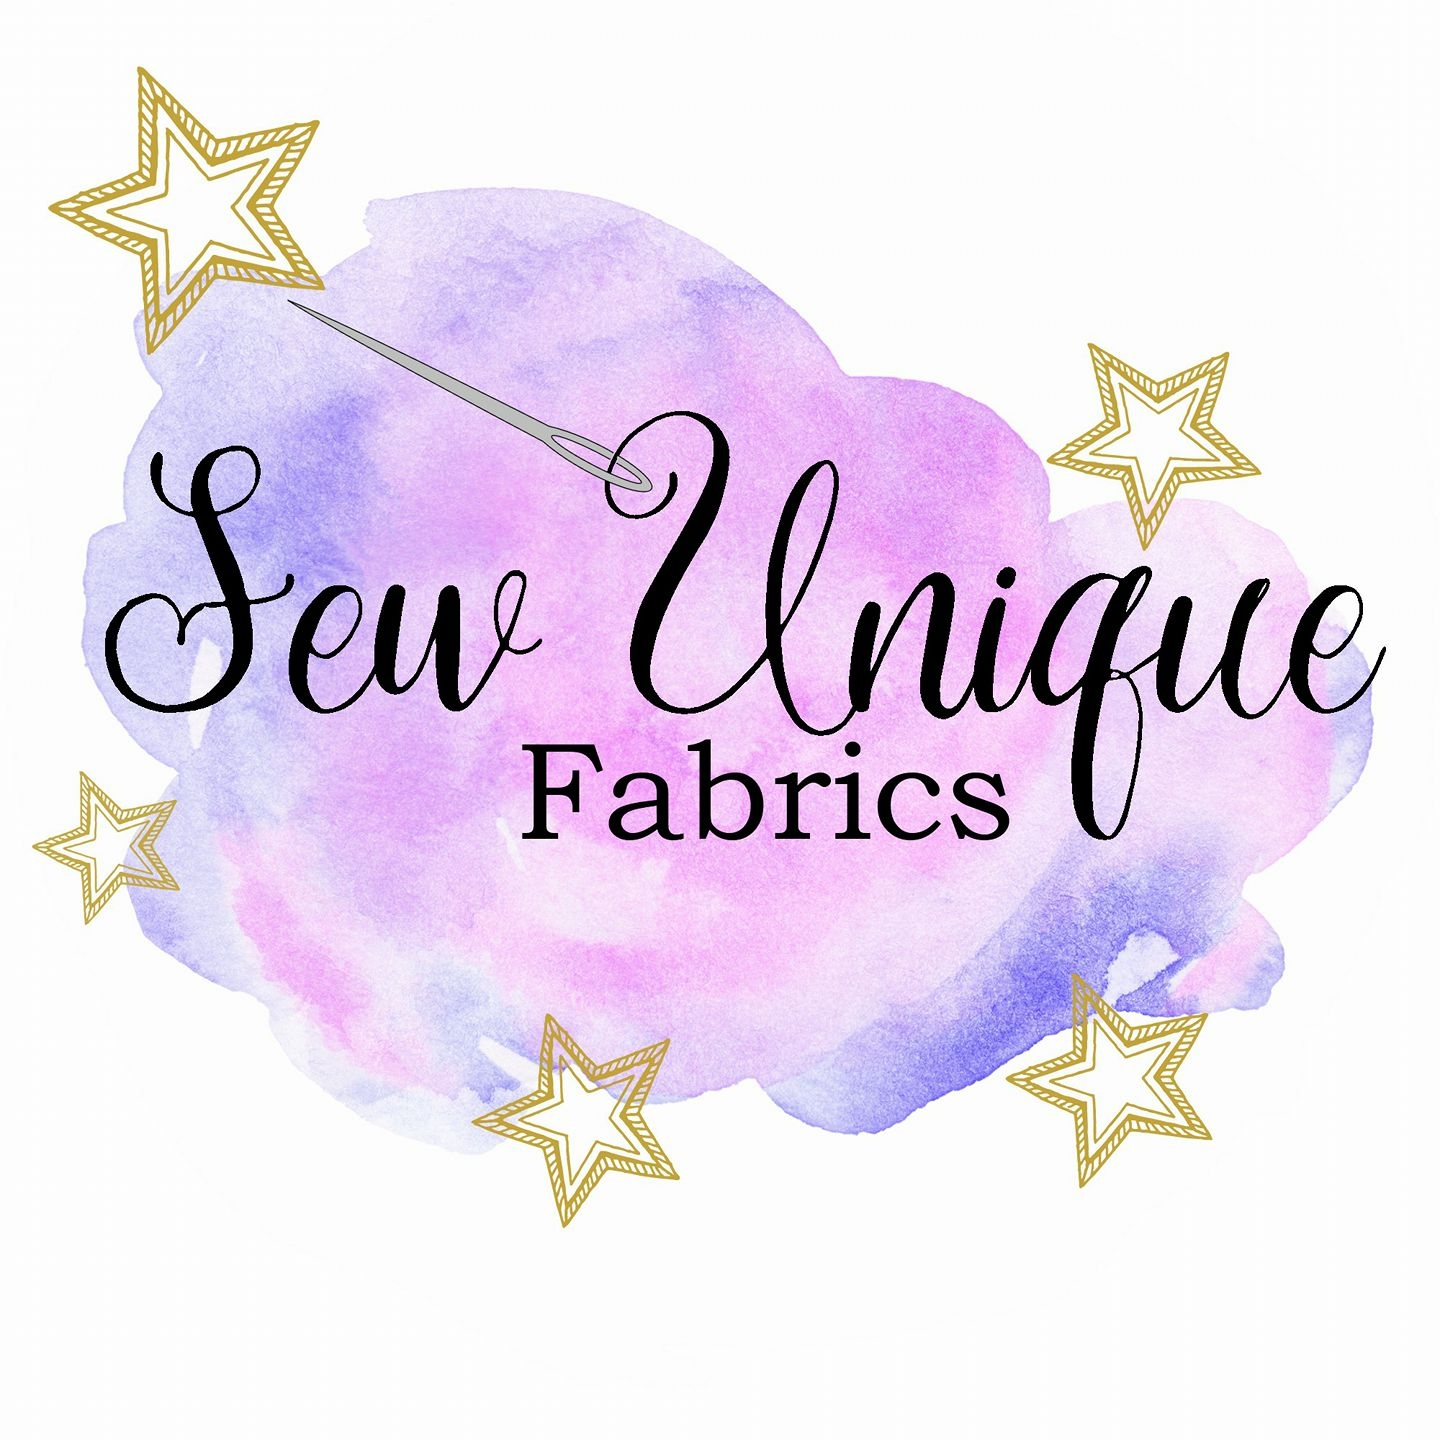 Sew Unique Fabrics